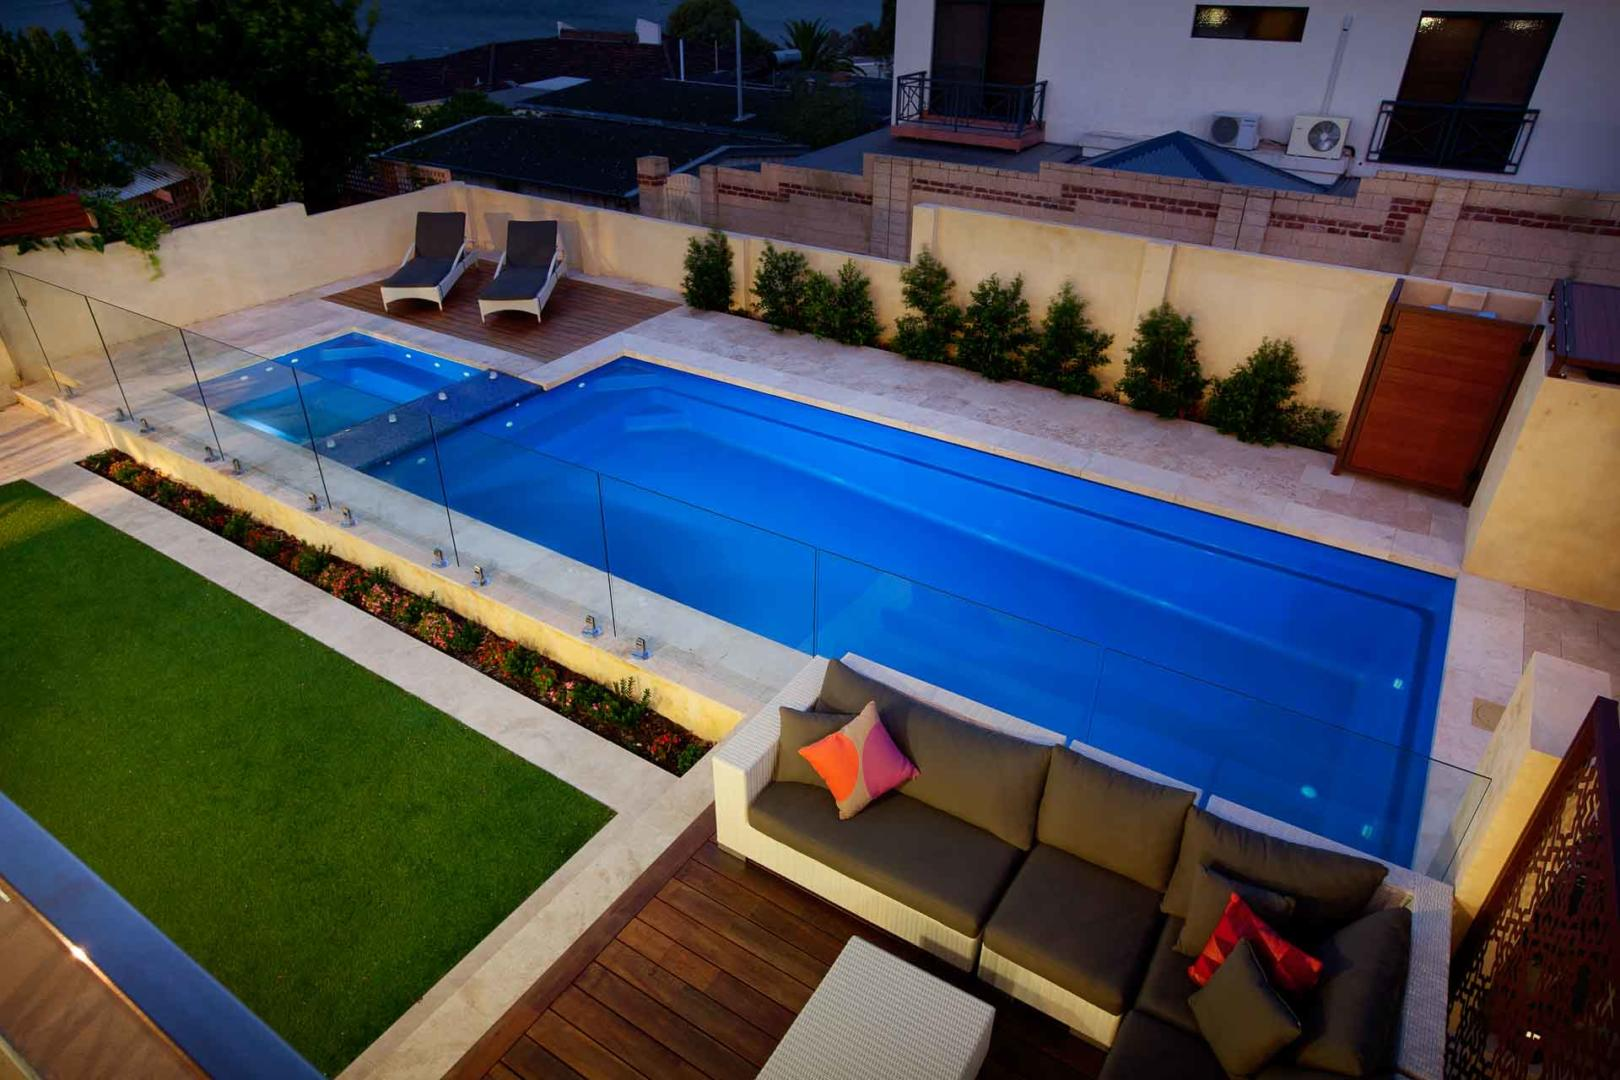 How to choose a swimming pool that's right for your backyard - Consider the shape and size of your block, Australian Outdoor Living.